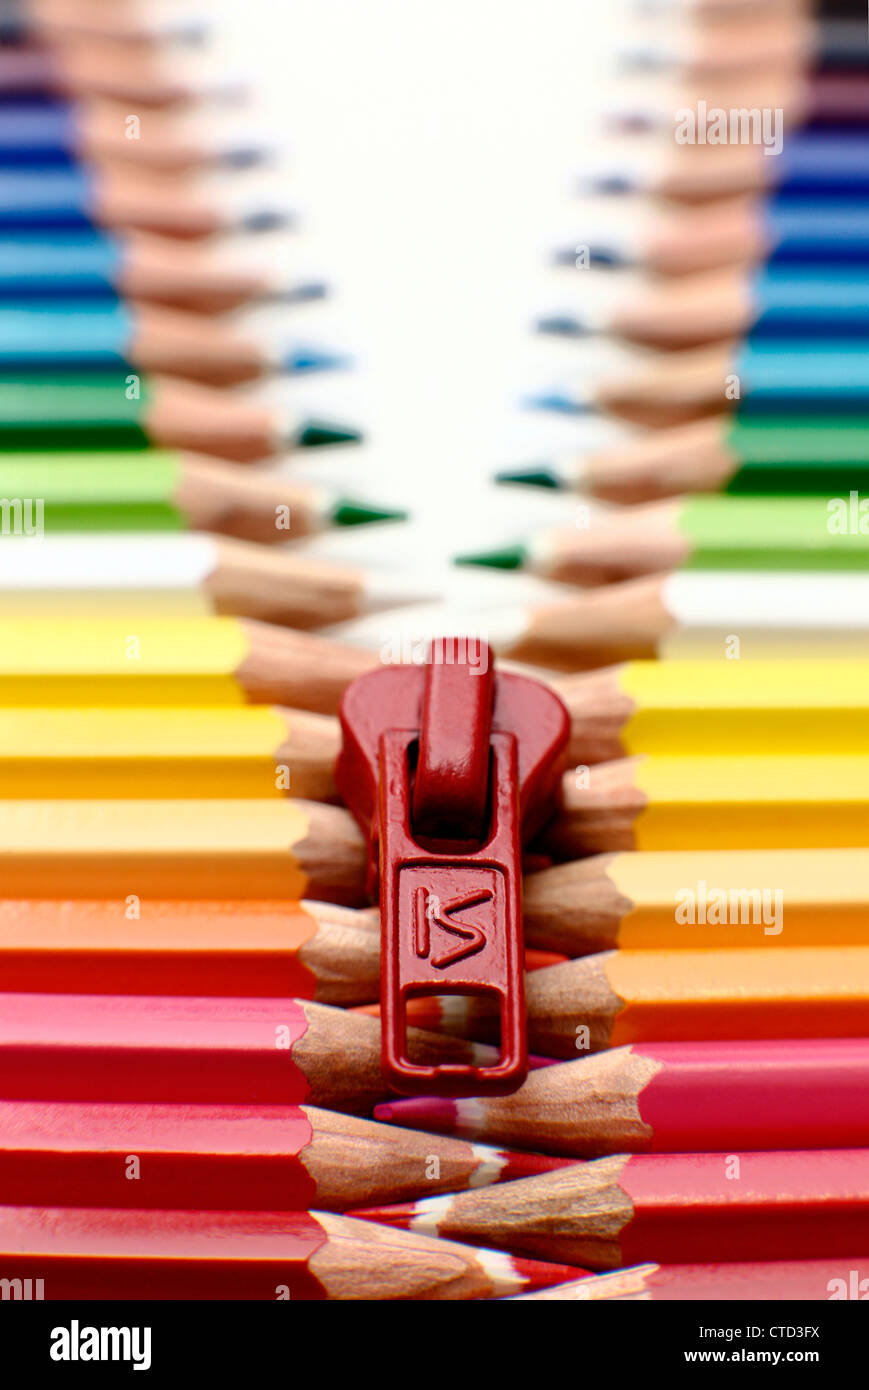 Pencil zip made of pencils in a row - Stock Image